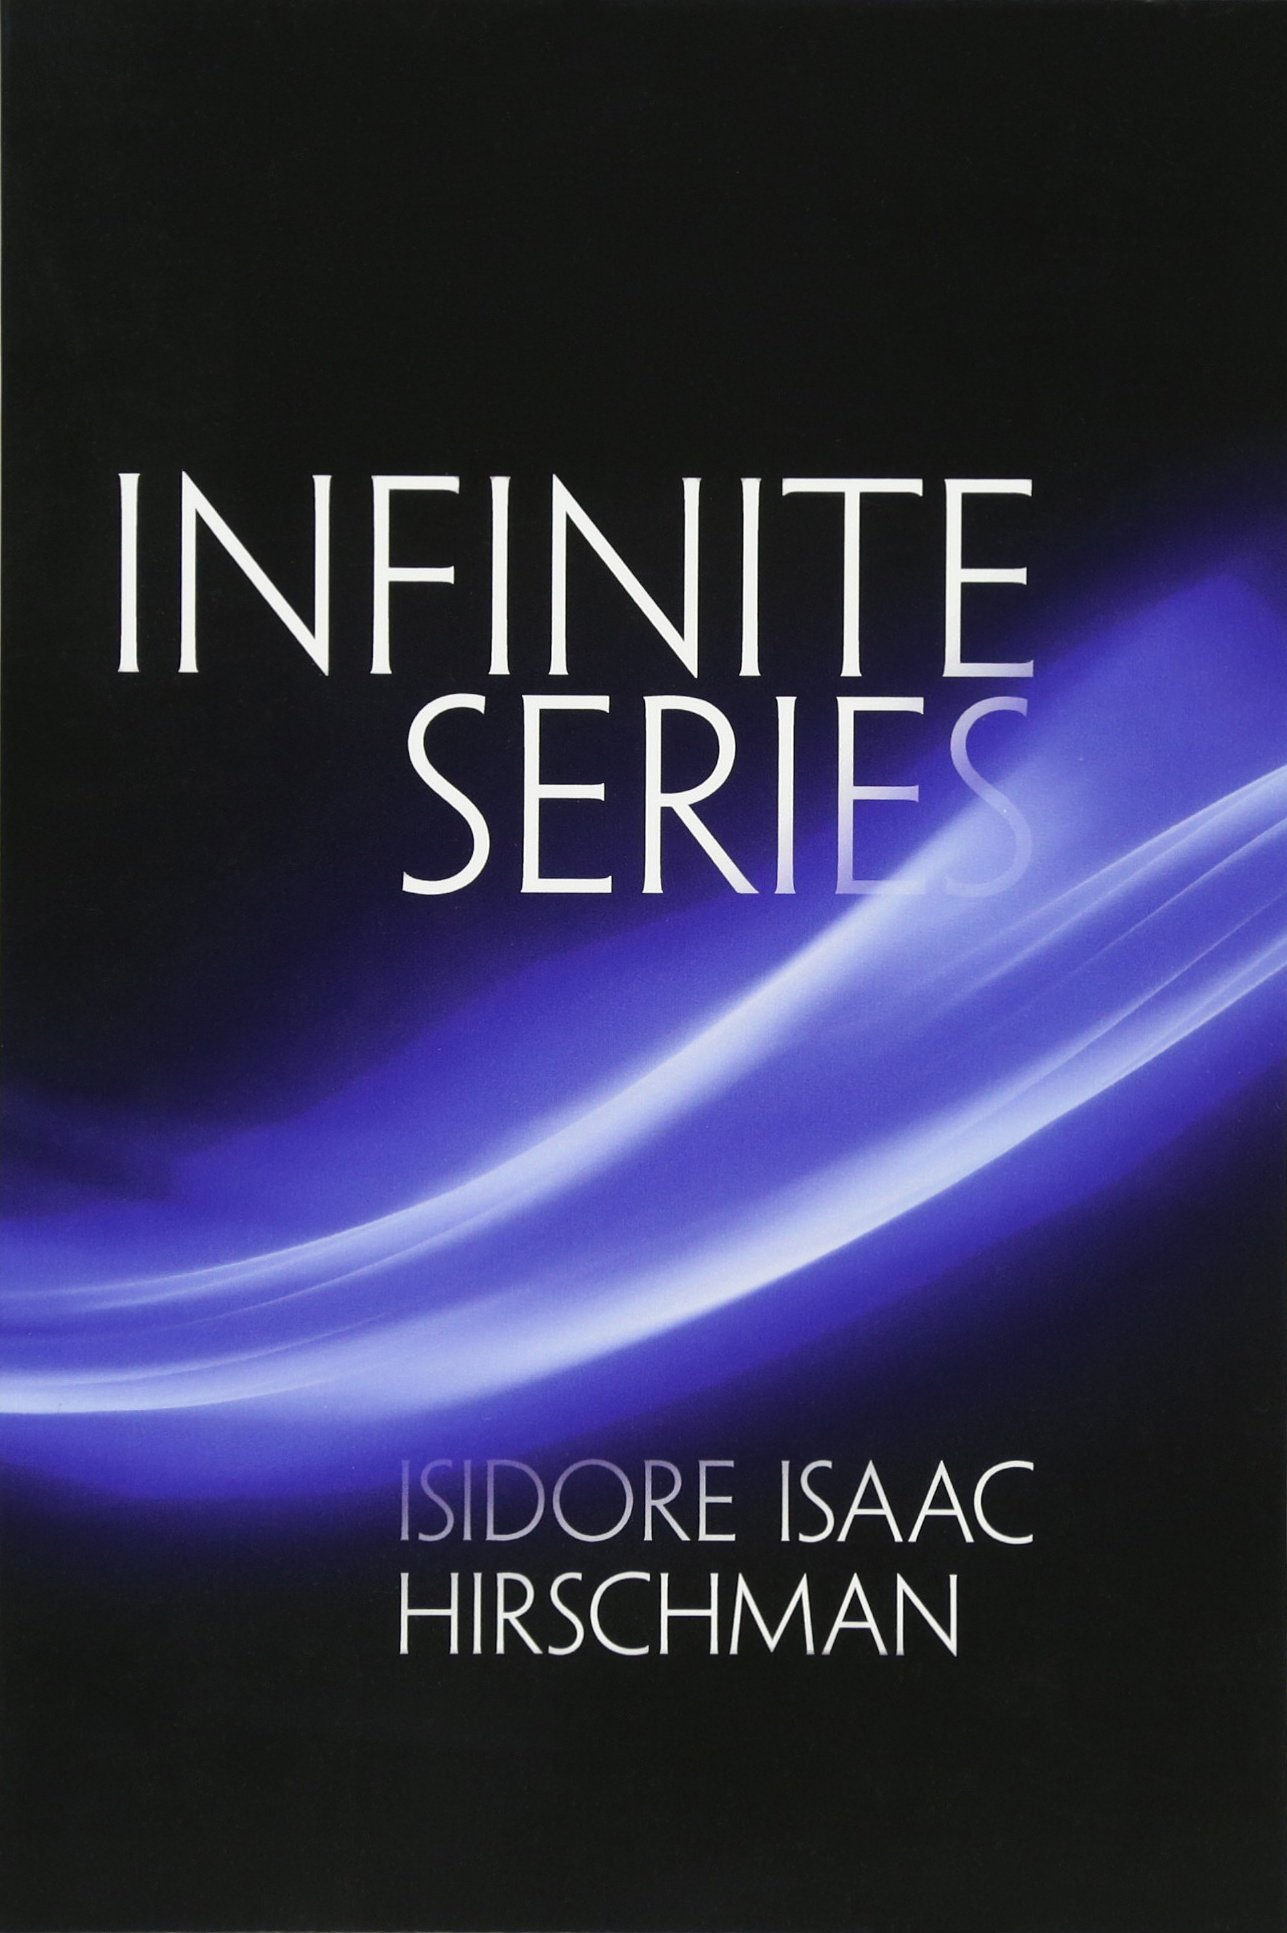 Infinite Series (Dover Books on Mathematics) PDF